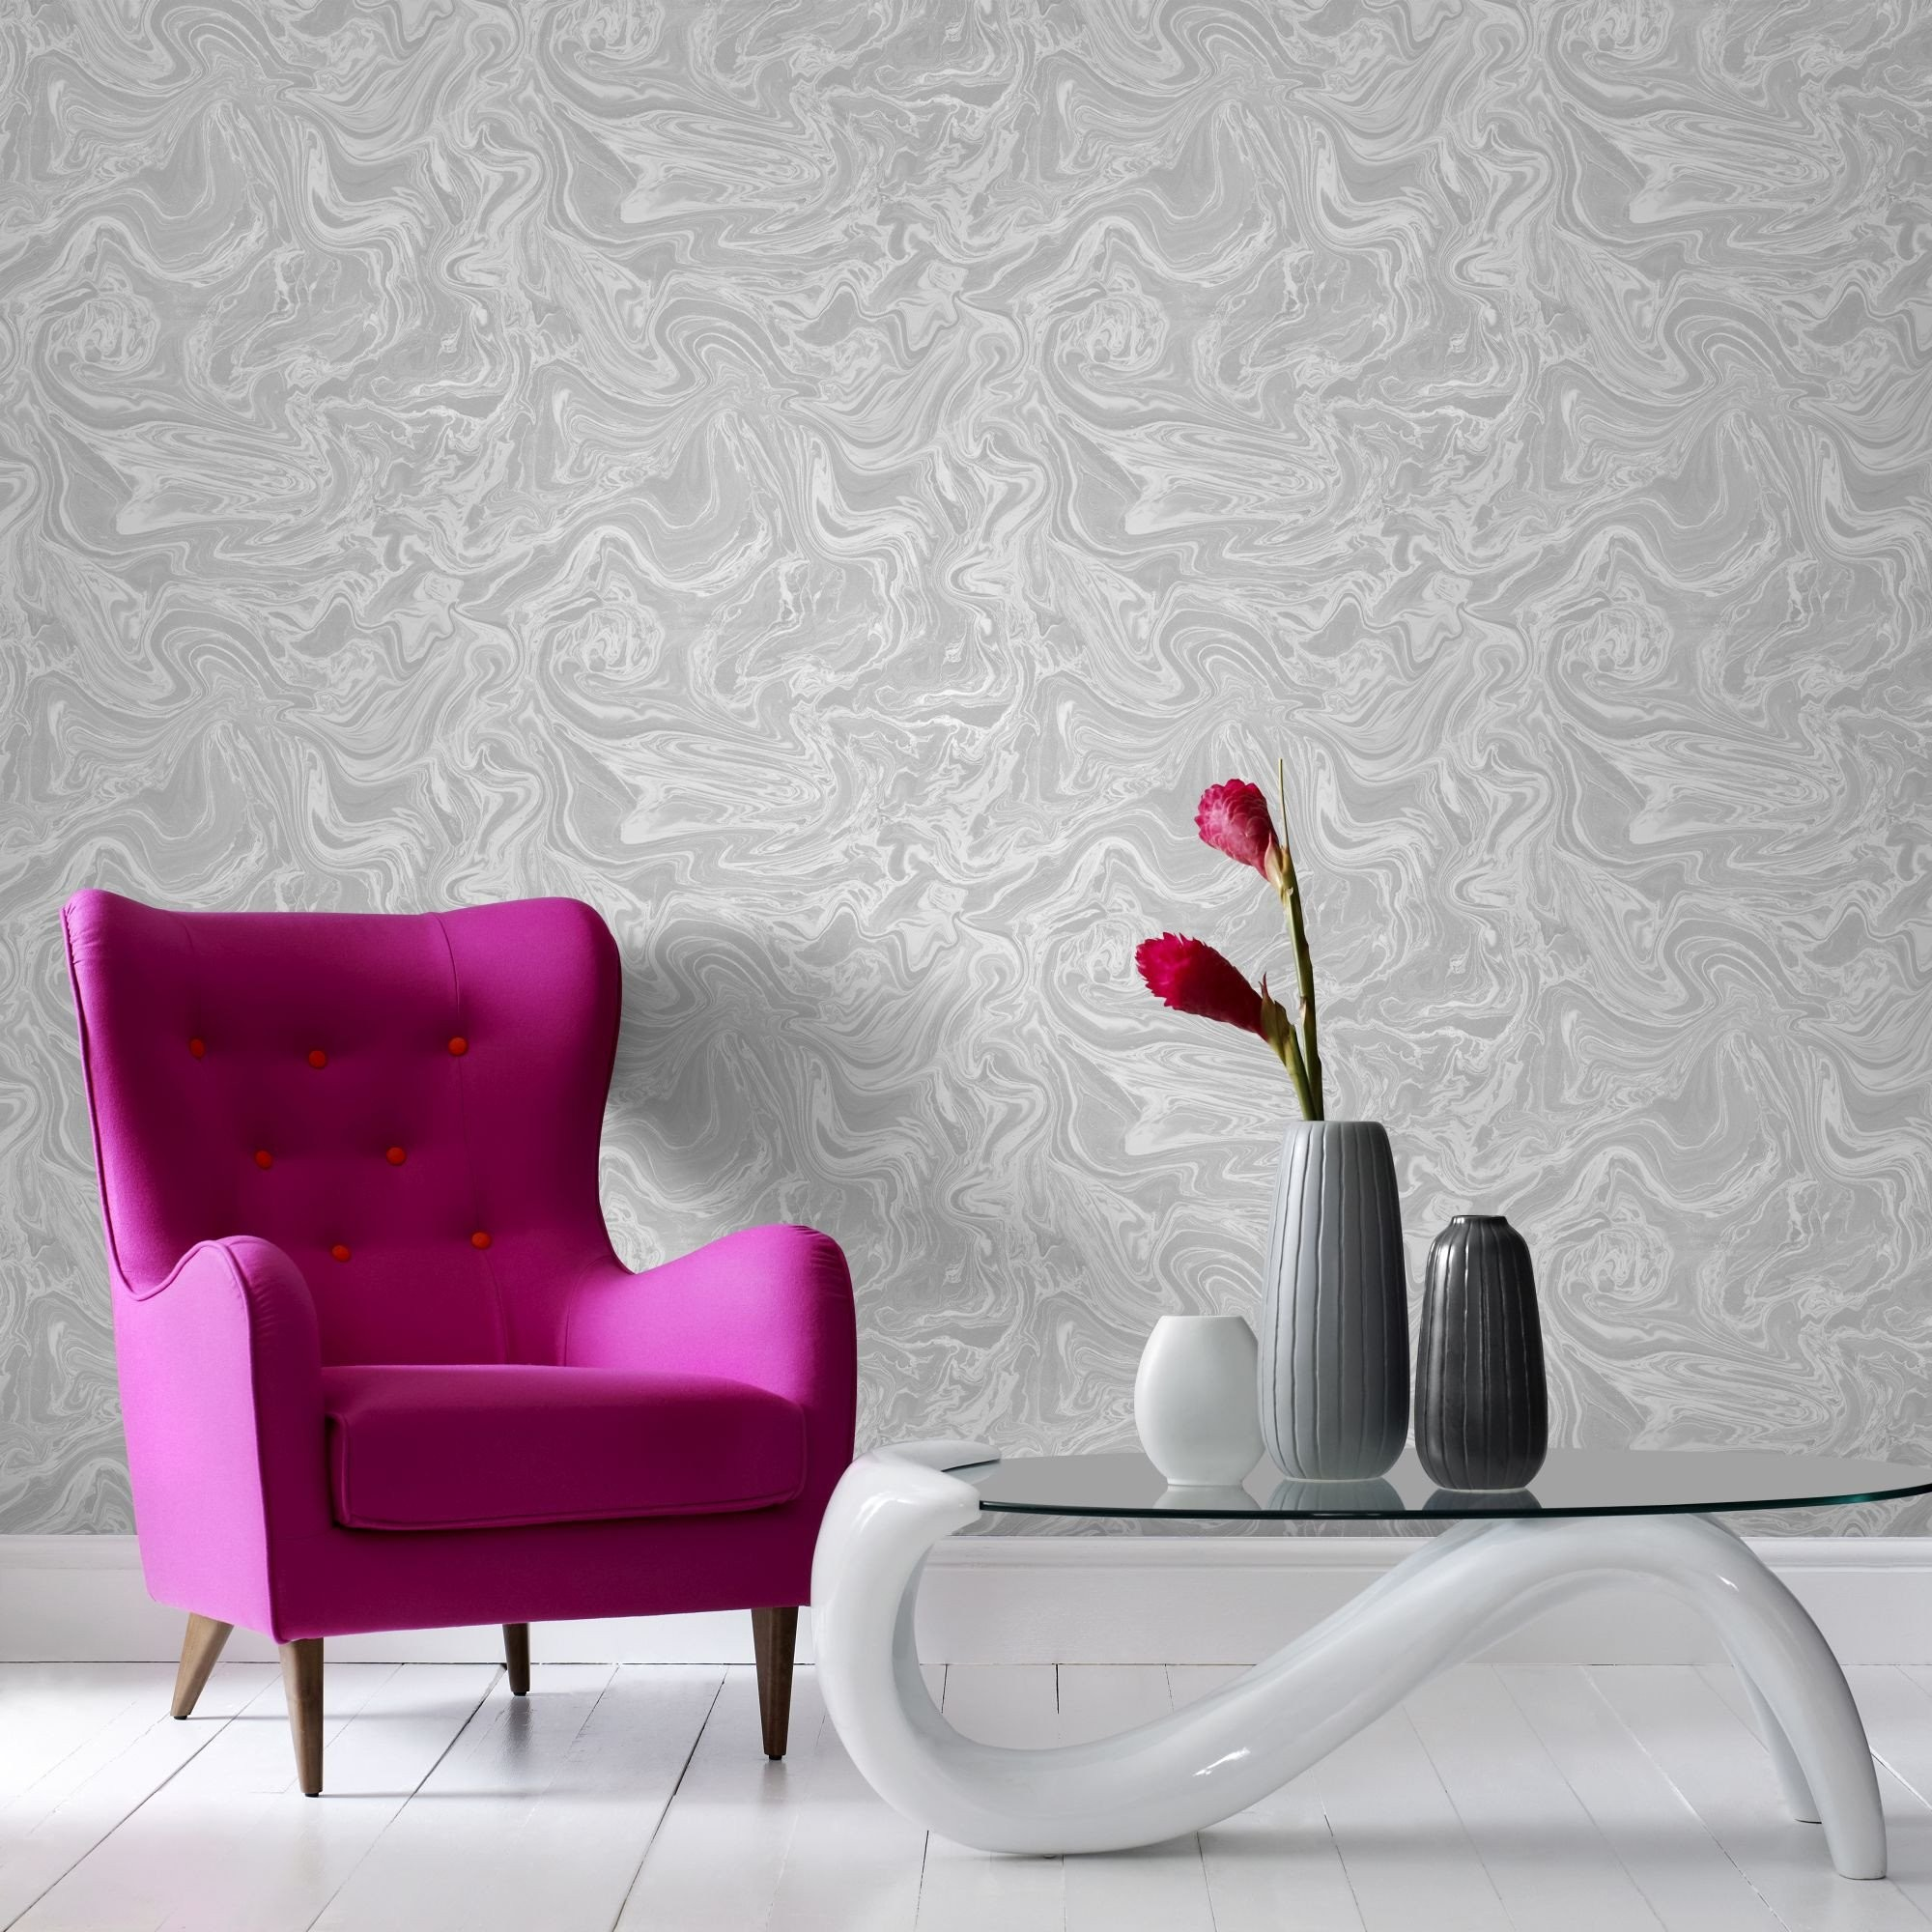 Res: 2000x2000, Marbled Wallpaper in Grey and White from the Pure Collection by Graham &  Brown